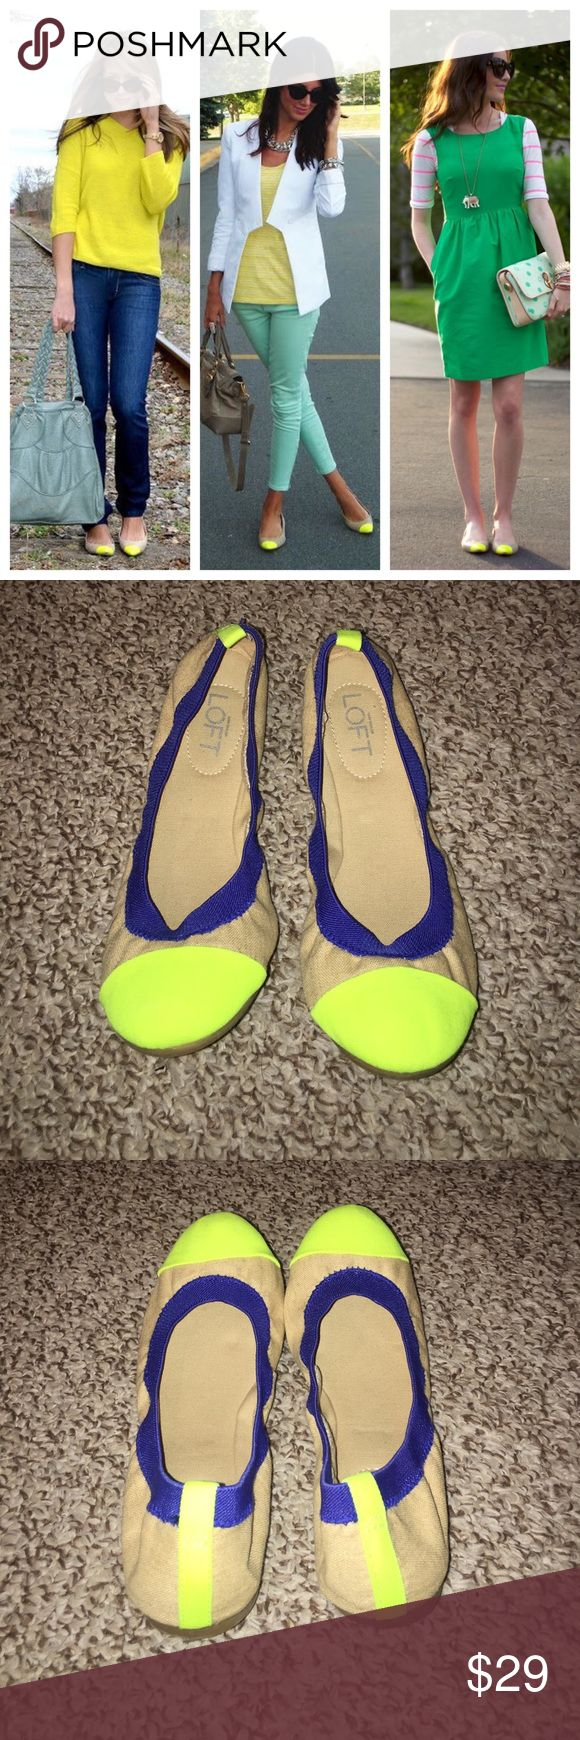 Ann Taylor Neon Flats Cute Ann Taylor Loft neon cap toe canvas ballet flats. Excellent condition. Worn only a couple of times. 🚨 The Cover Shot (main picture) is strictly for styling ideas and not an exact representation of the item for sale. 🚨 Ann Taylor Shoes Flats & Loafers